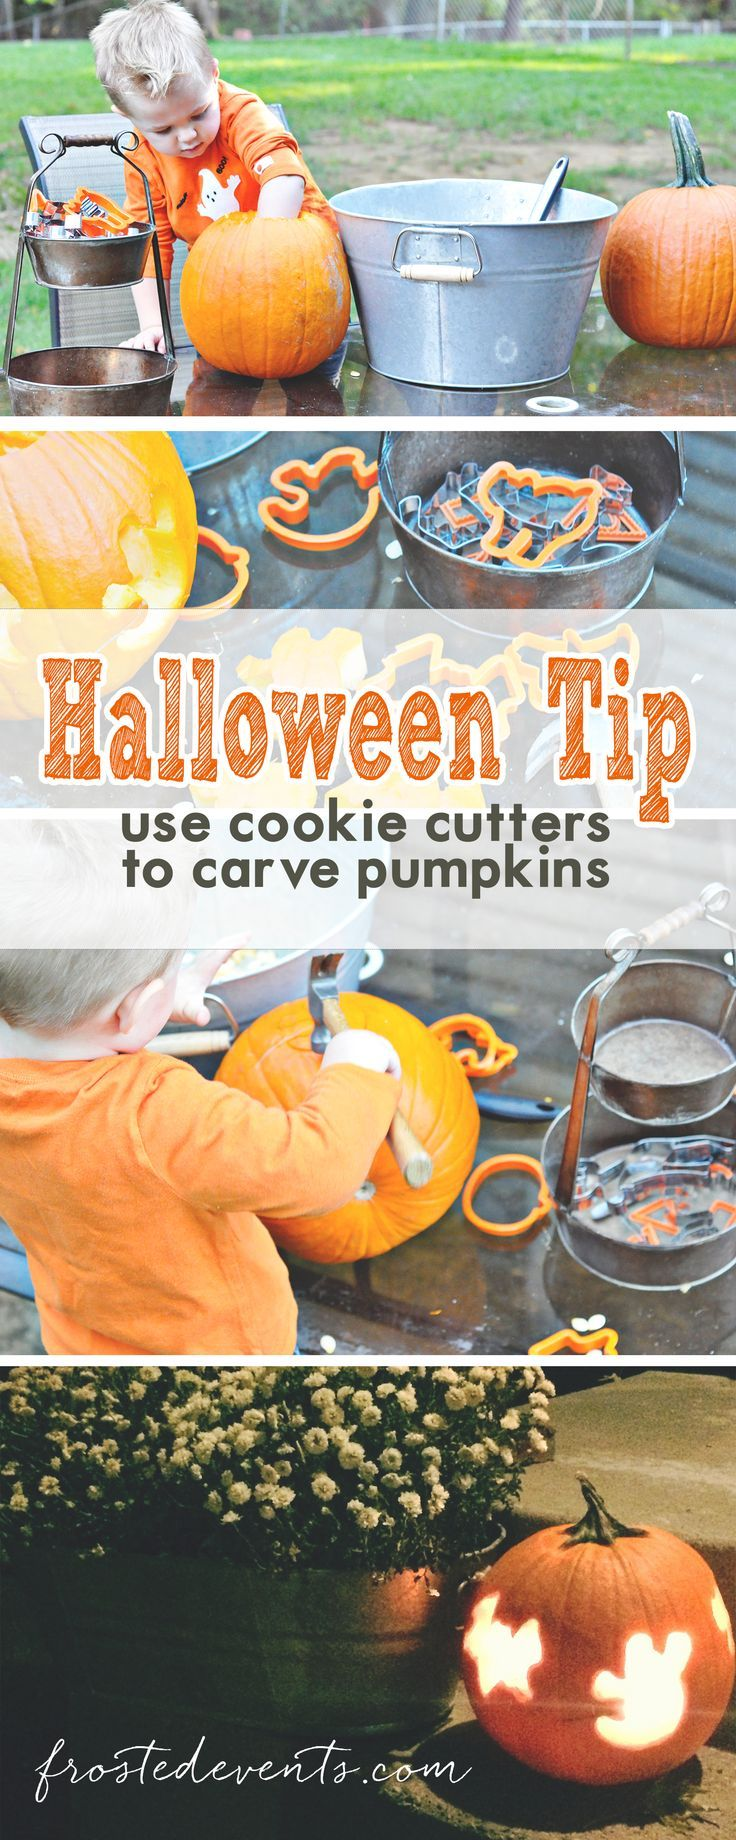 Best 20+ Toddler halloween crafts ideas on Pinterest | Toddler ...